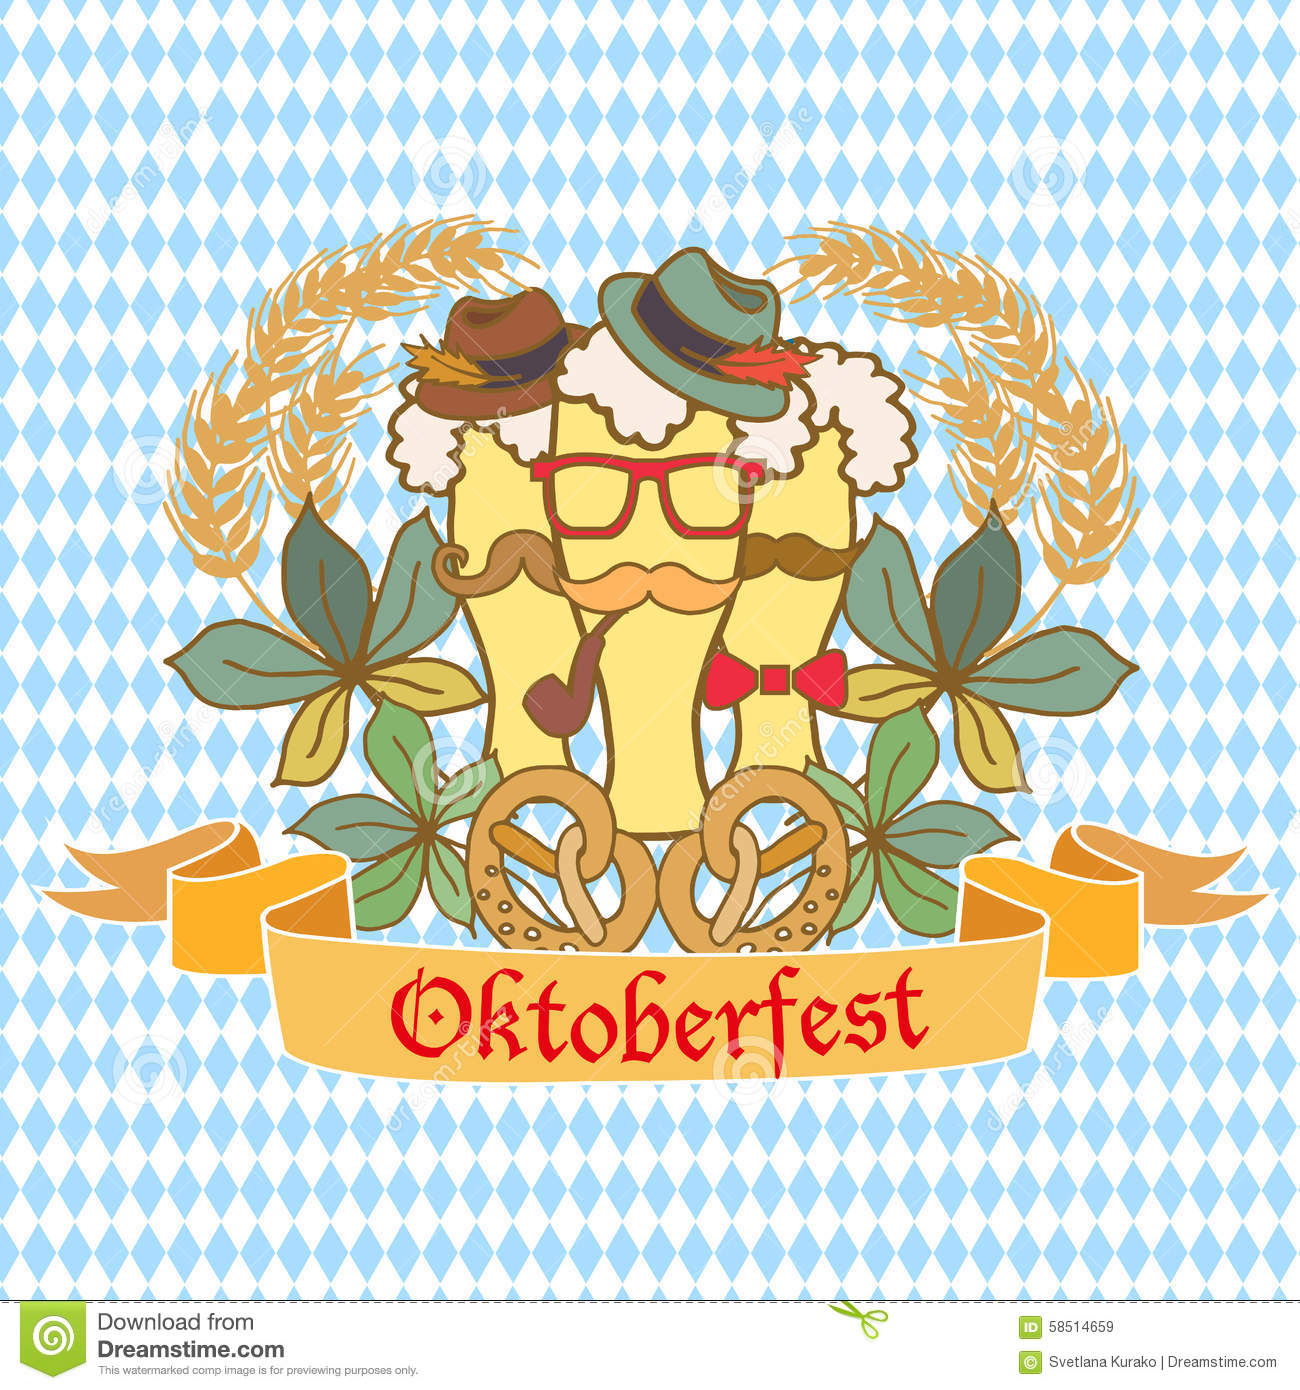 oktoberfest logo template with coat of arms editorial